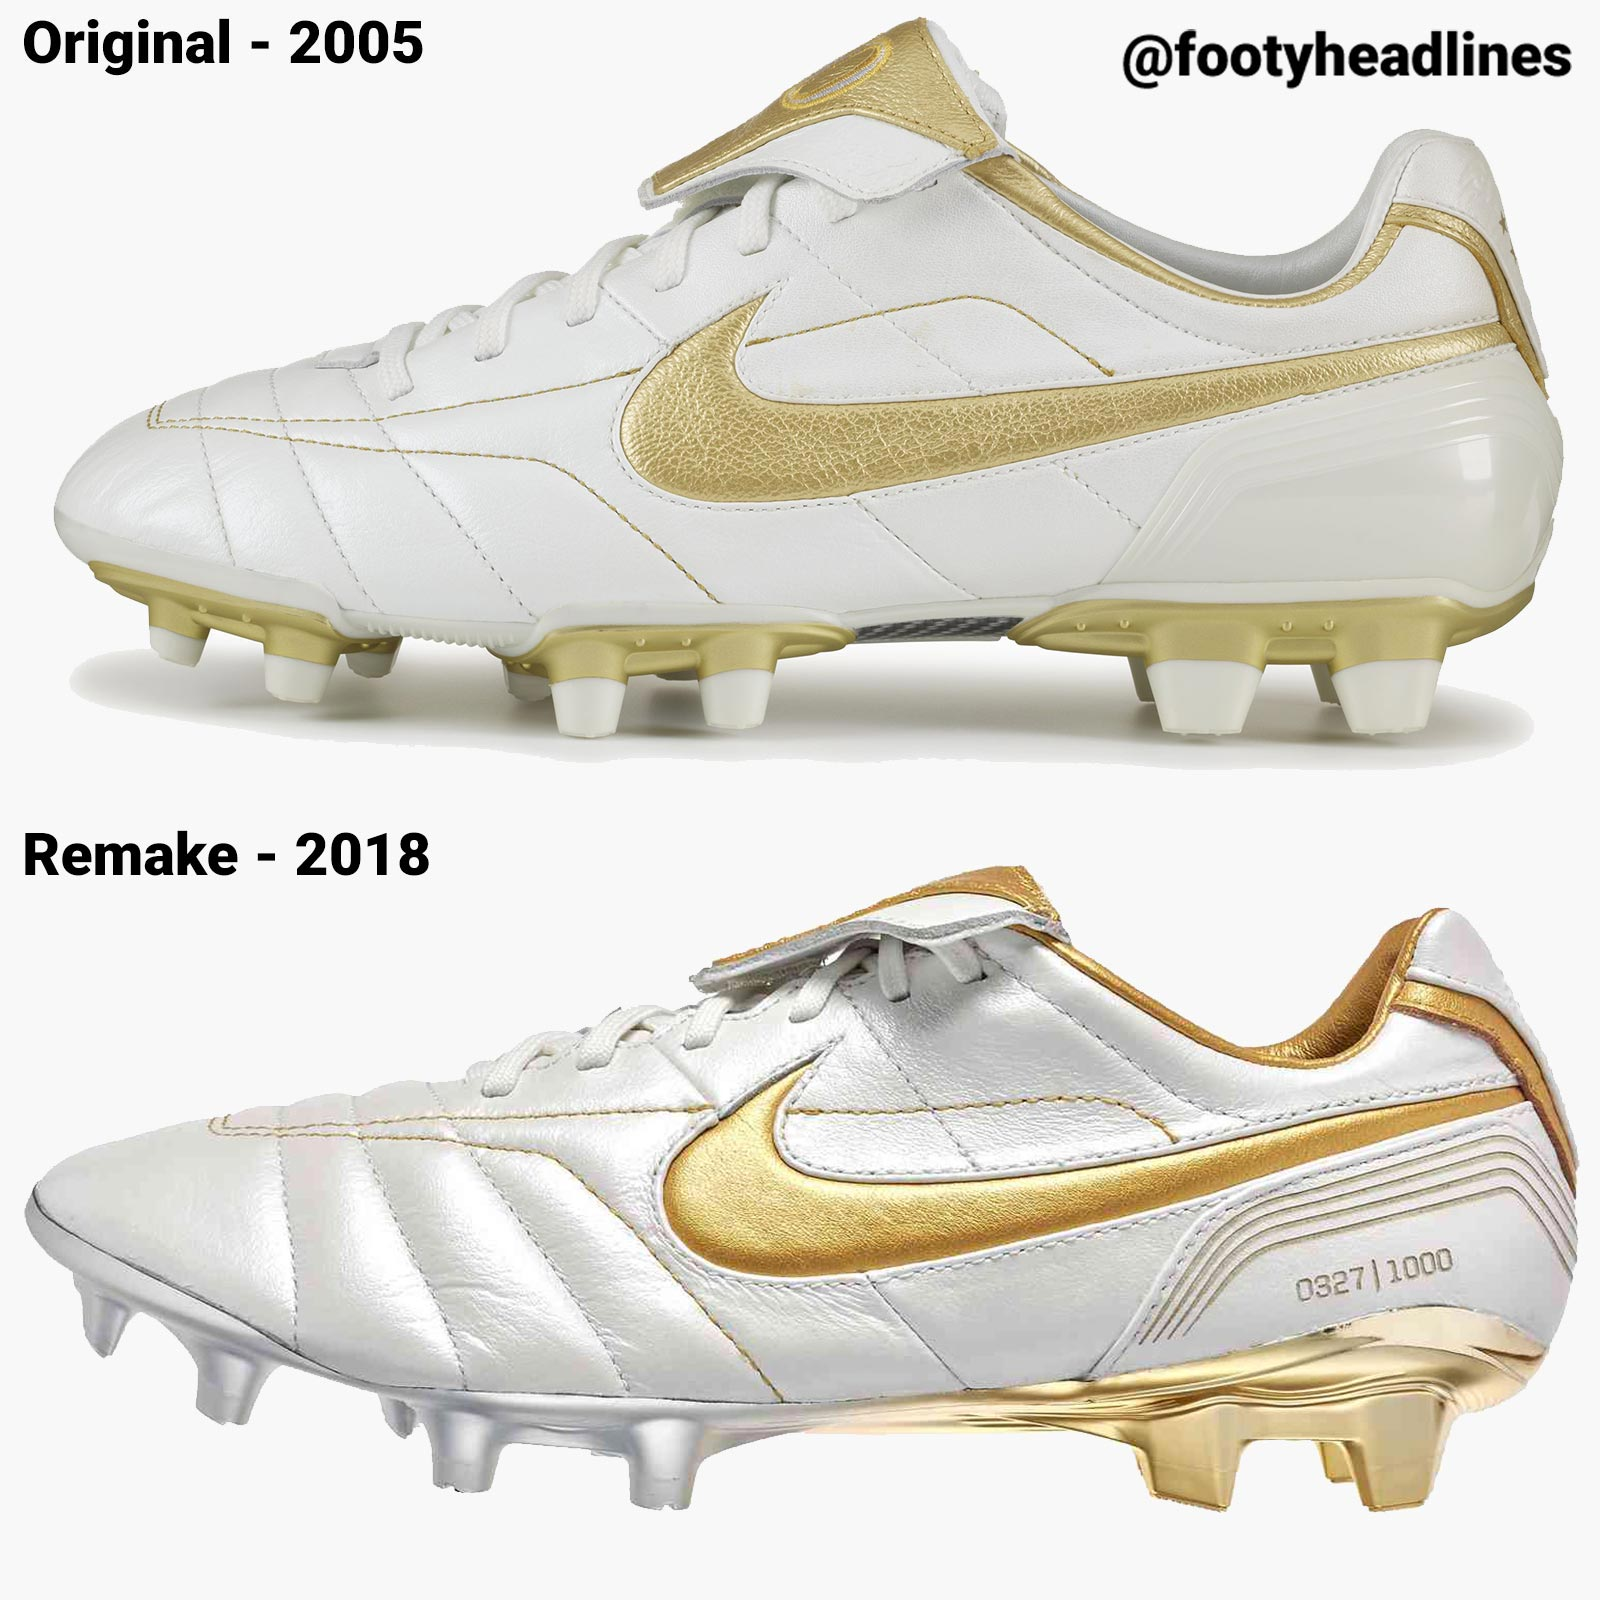 huge discount d87fb cf707 Nike Air Legend Tiempo Ronaldinho - 2018 Remake vs 2005 ...